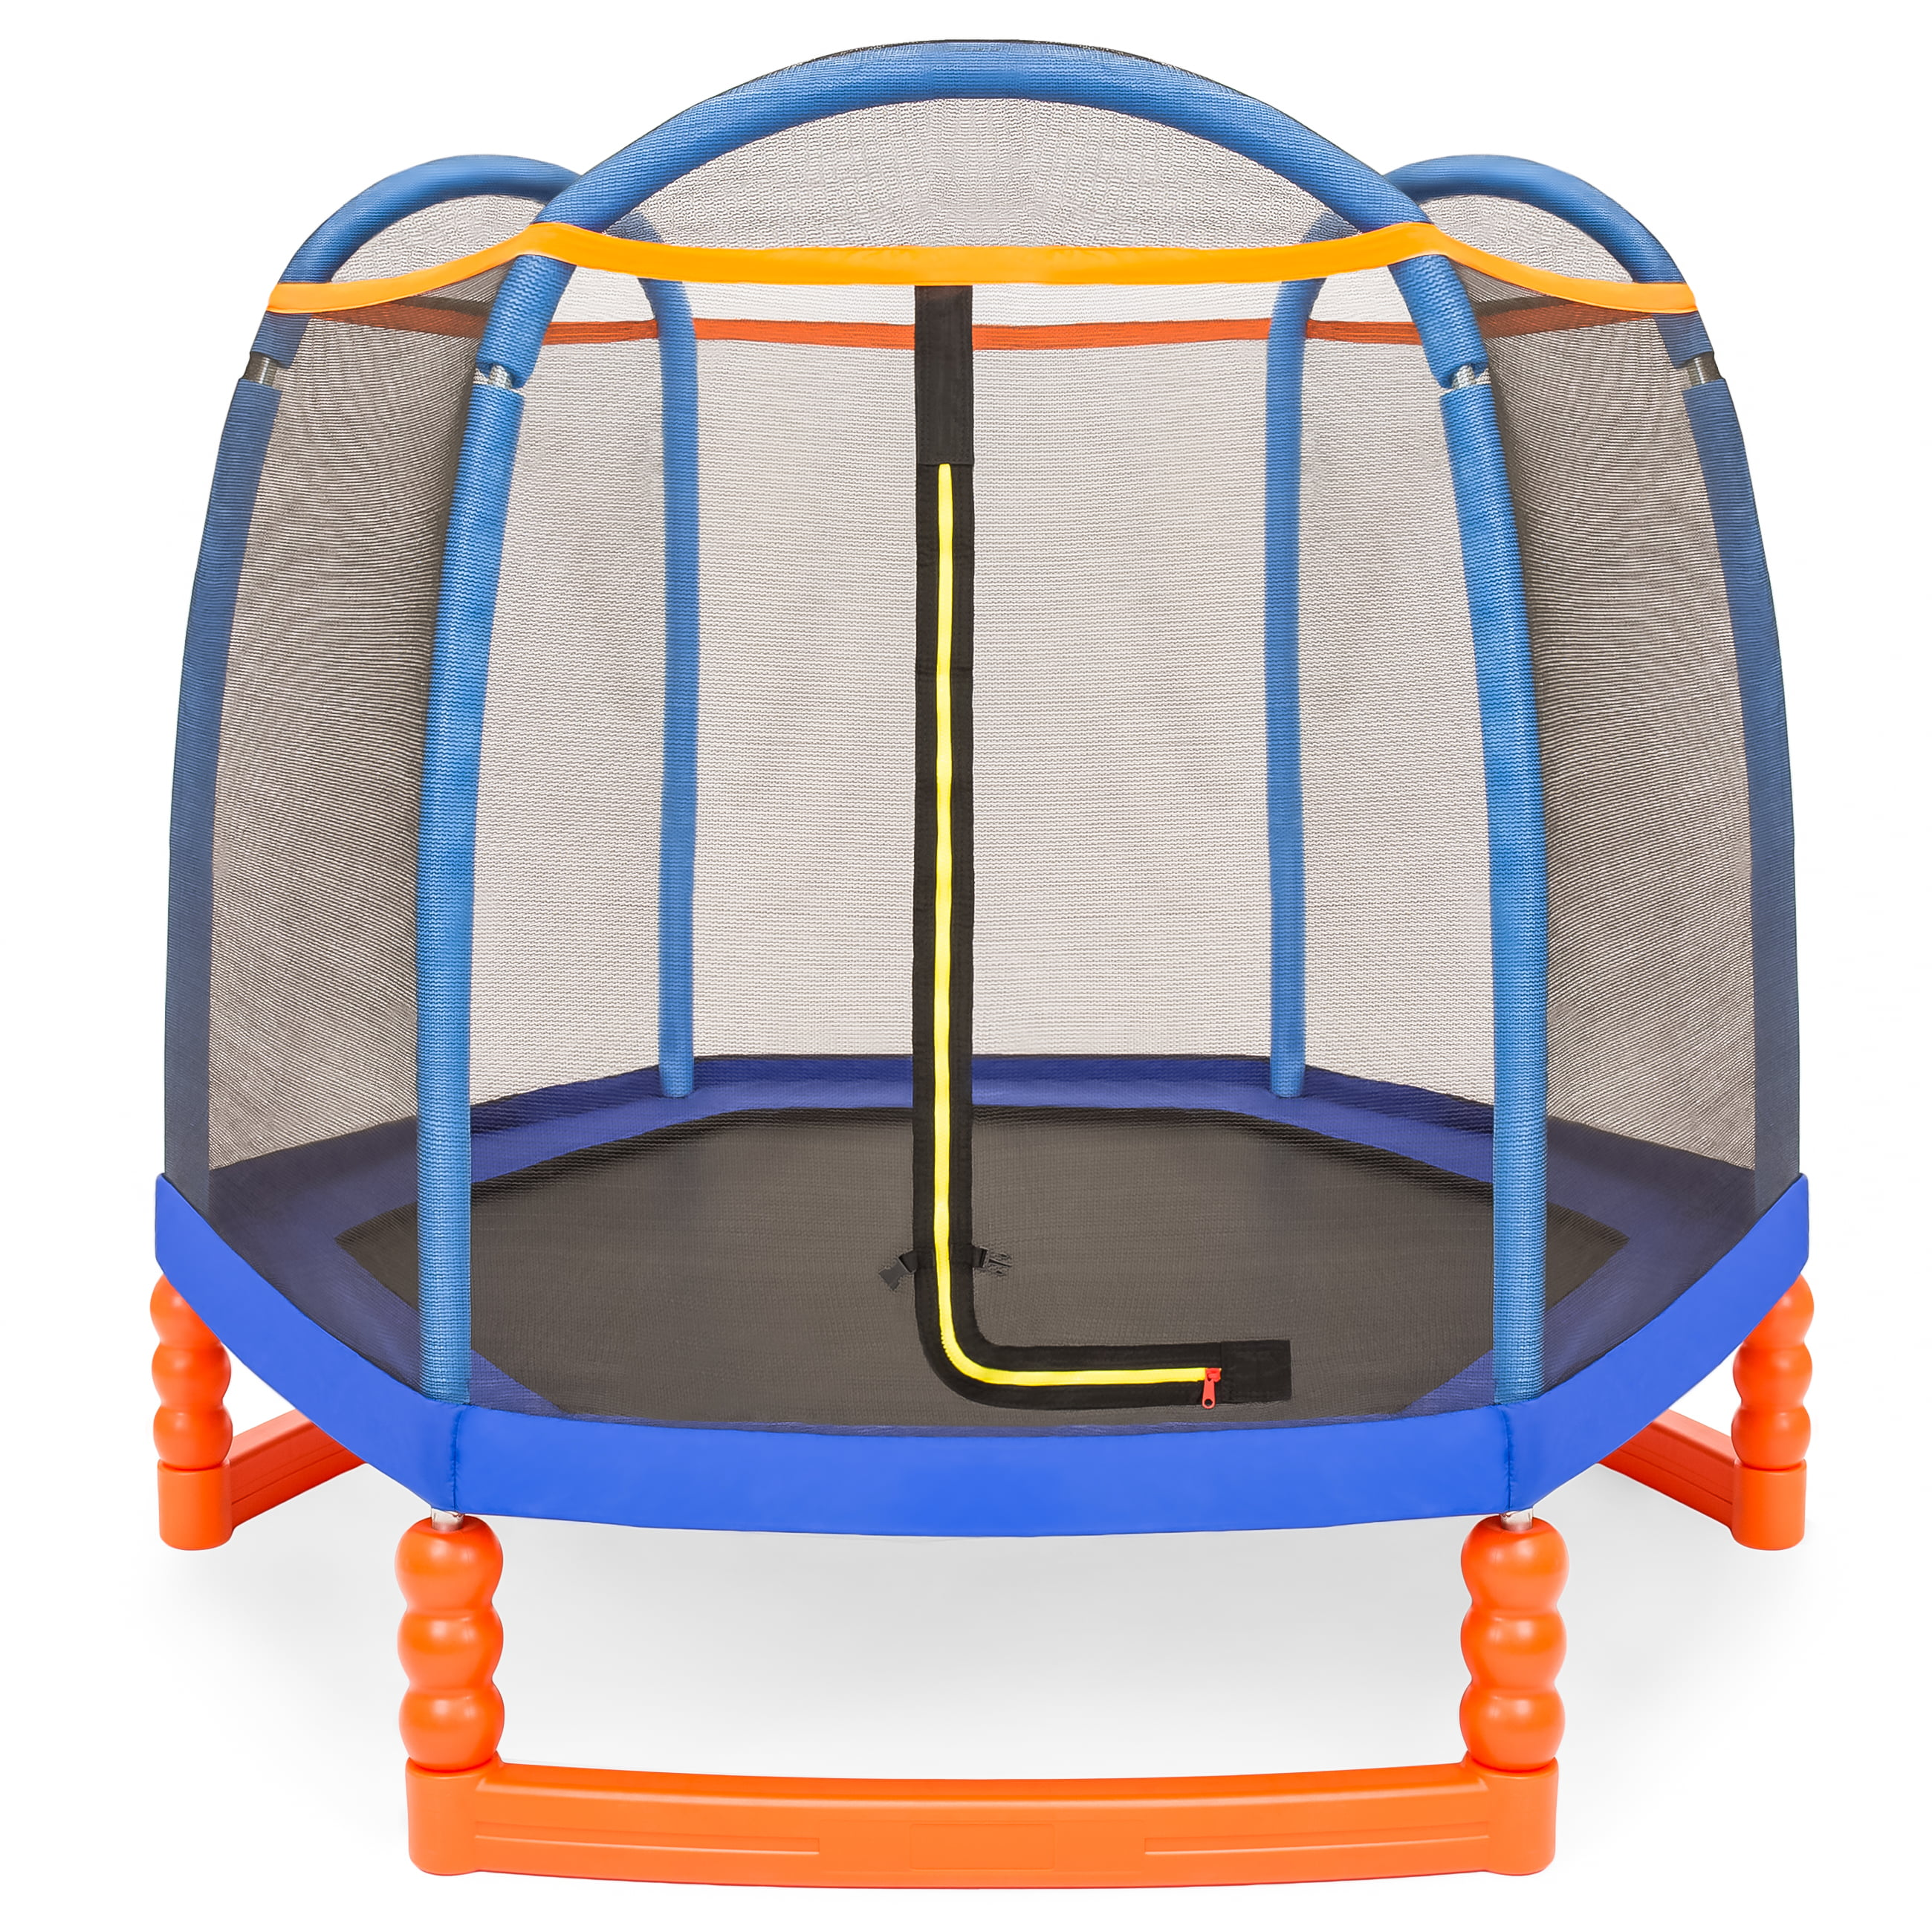 Best Choice Products 7ft Kids Round Mini Trampoline for ...